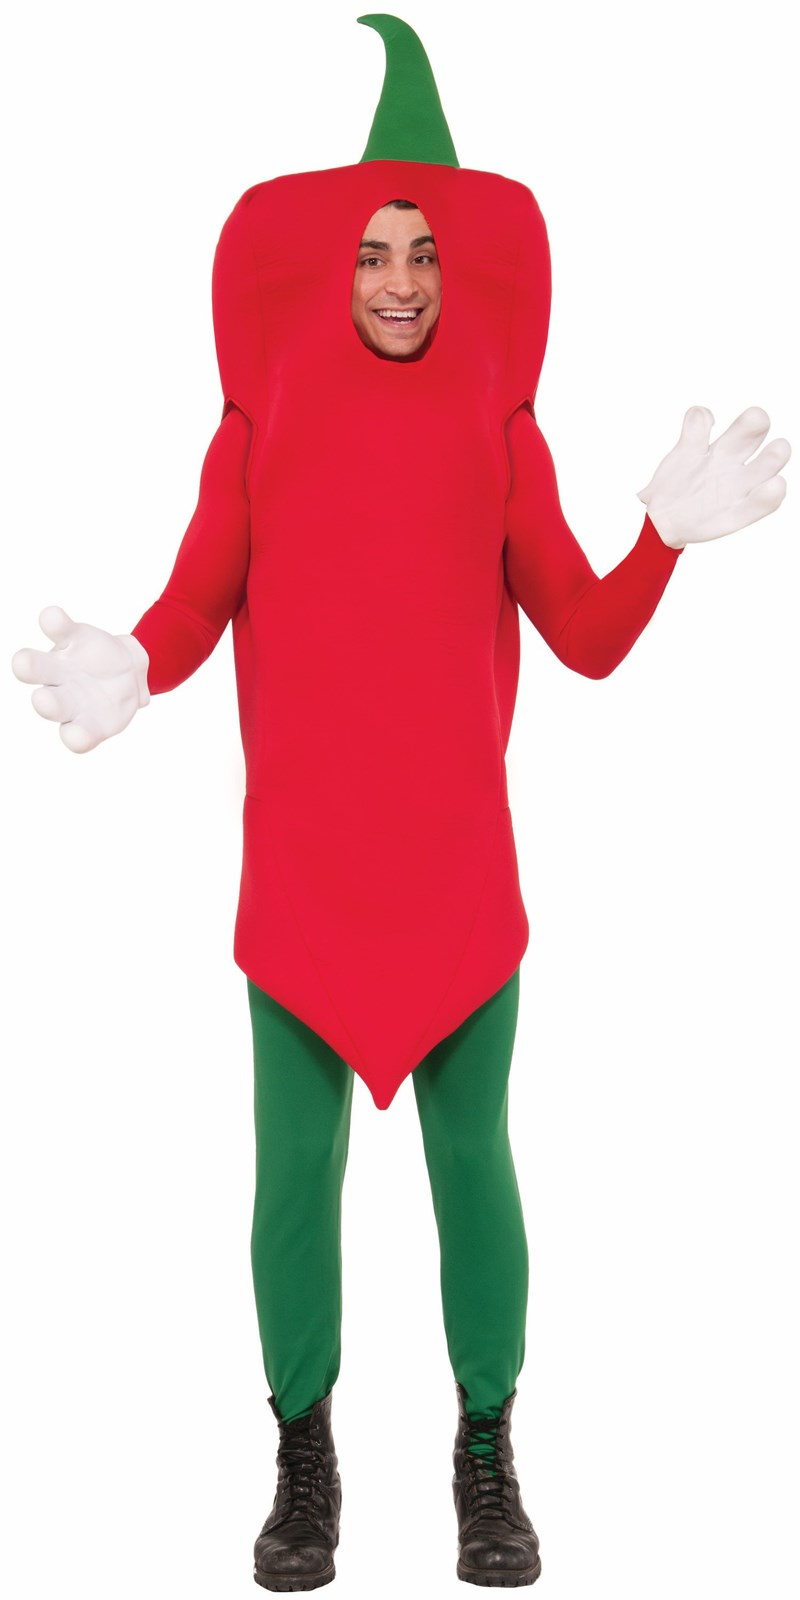 Hot Pepper Costume for Adults | BuyCostumes.com